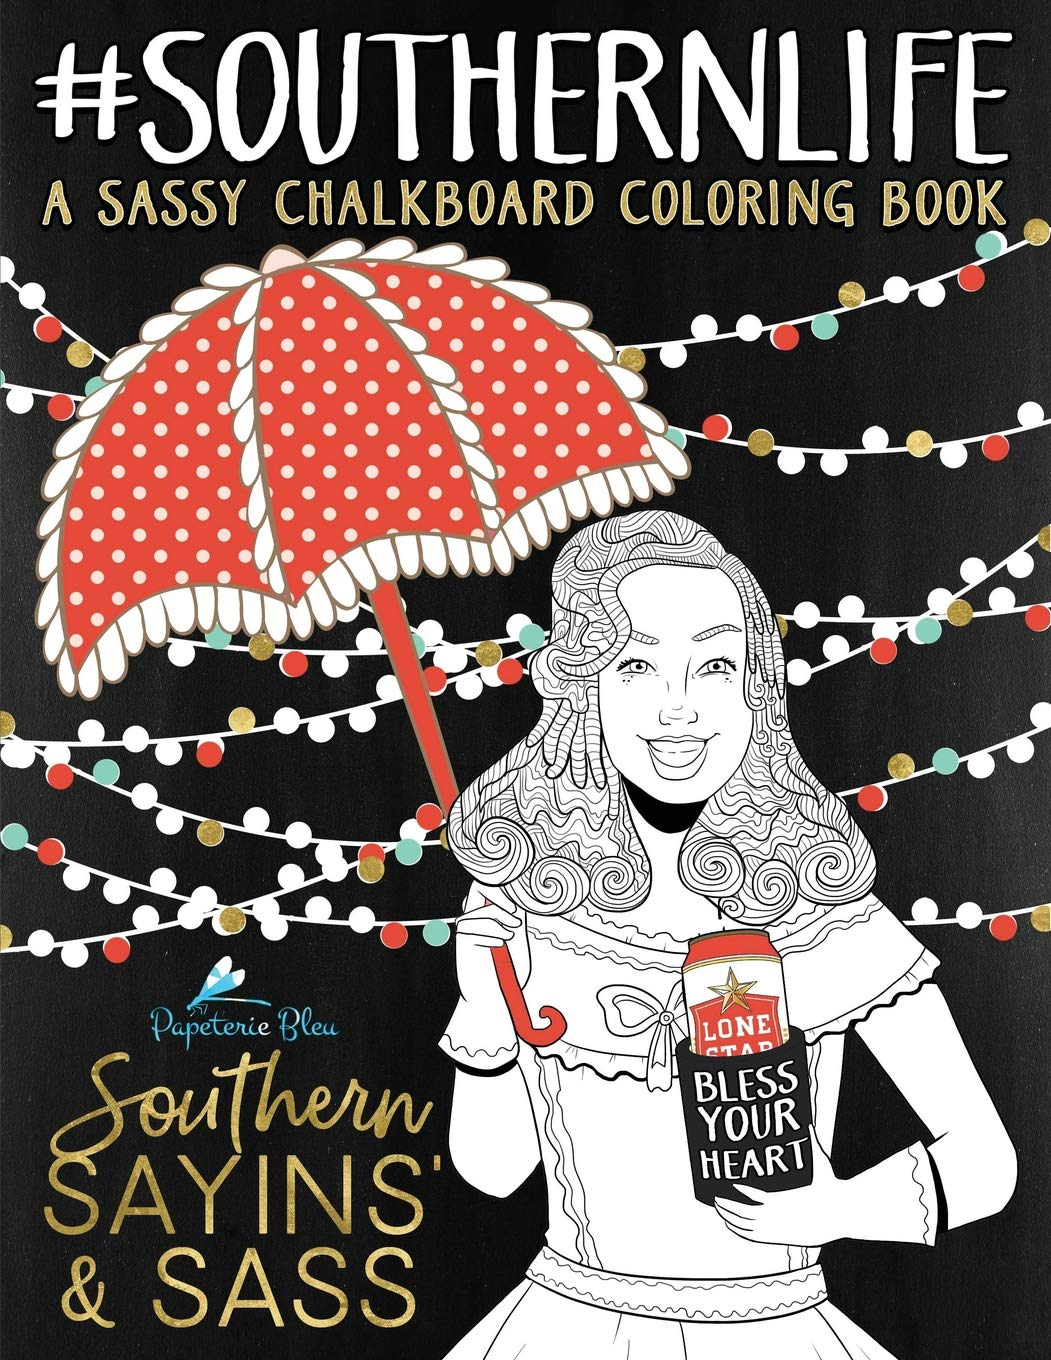 Southern Sayins' & Sass: A Chalkboard Coloring Book: Well Bless Your Heart: Southern Charm & Southern Sayings Funny Coloring Books For Grownups & ... Spiritual Coloring Book & Zen Coloring Book) Paperback Papeterie Bleu 1533320578